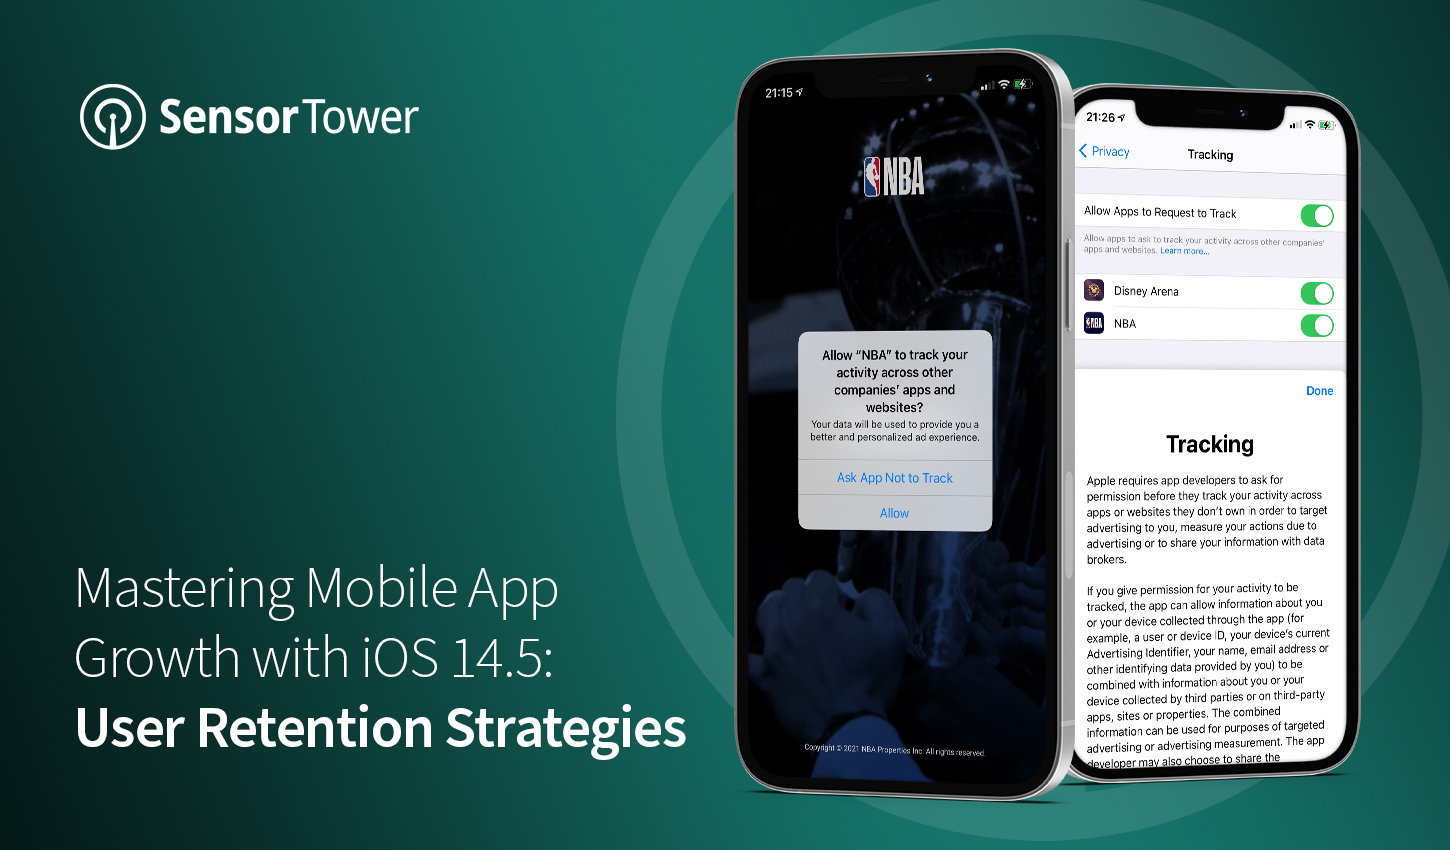 Harnessing Mobile Application Growth with iOS 14.5: User Retention Strategies